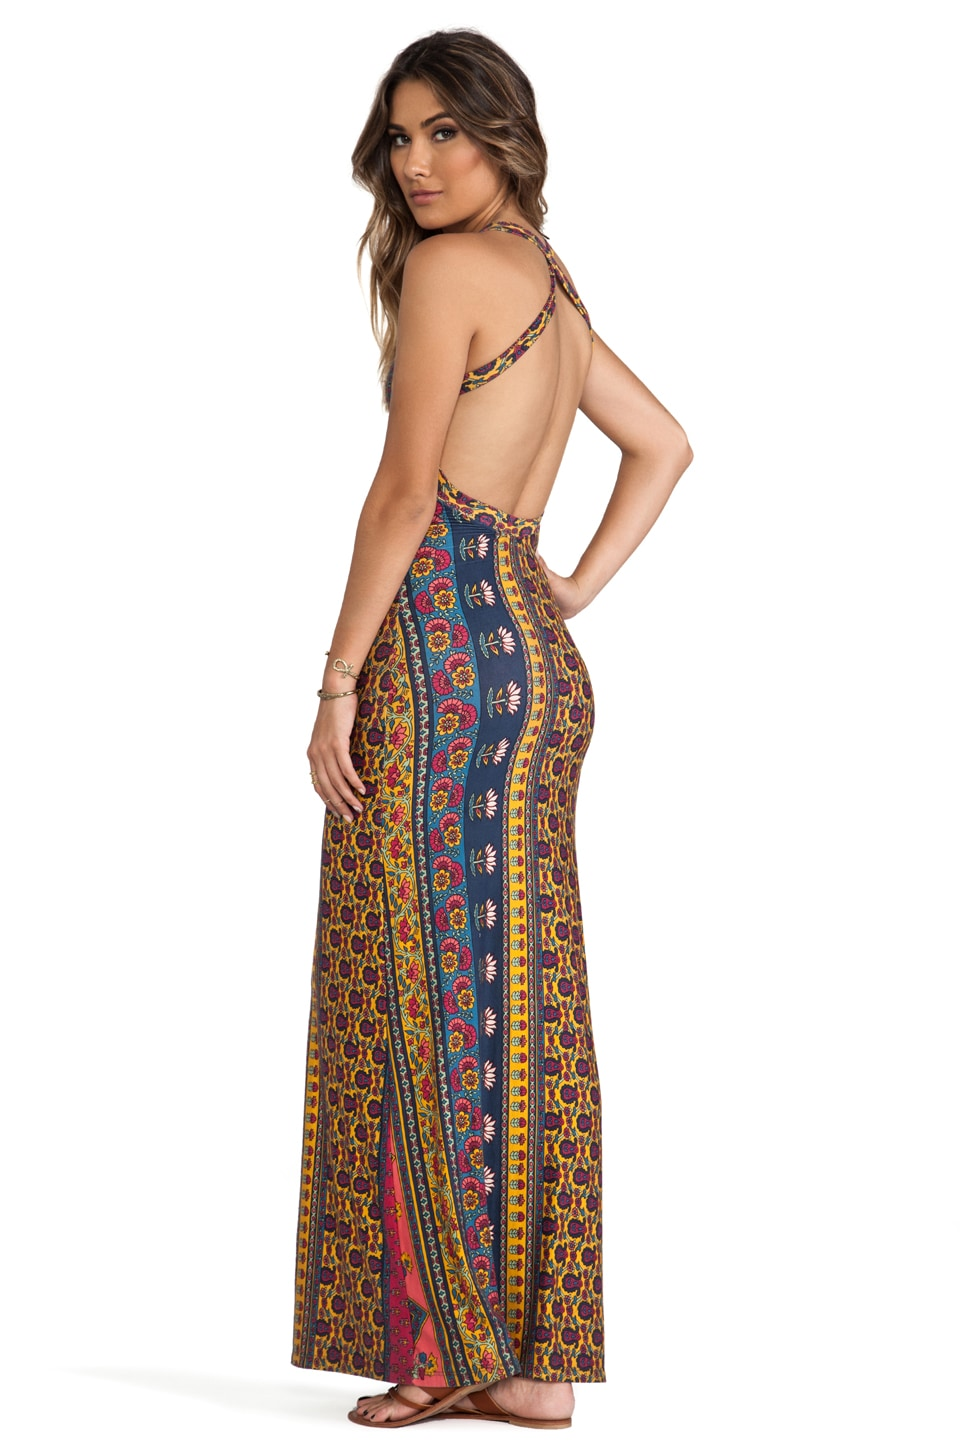 NOVELLA ROYALE Midnight Rambler Maxi Dress in Red Ethnic Floral